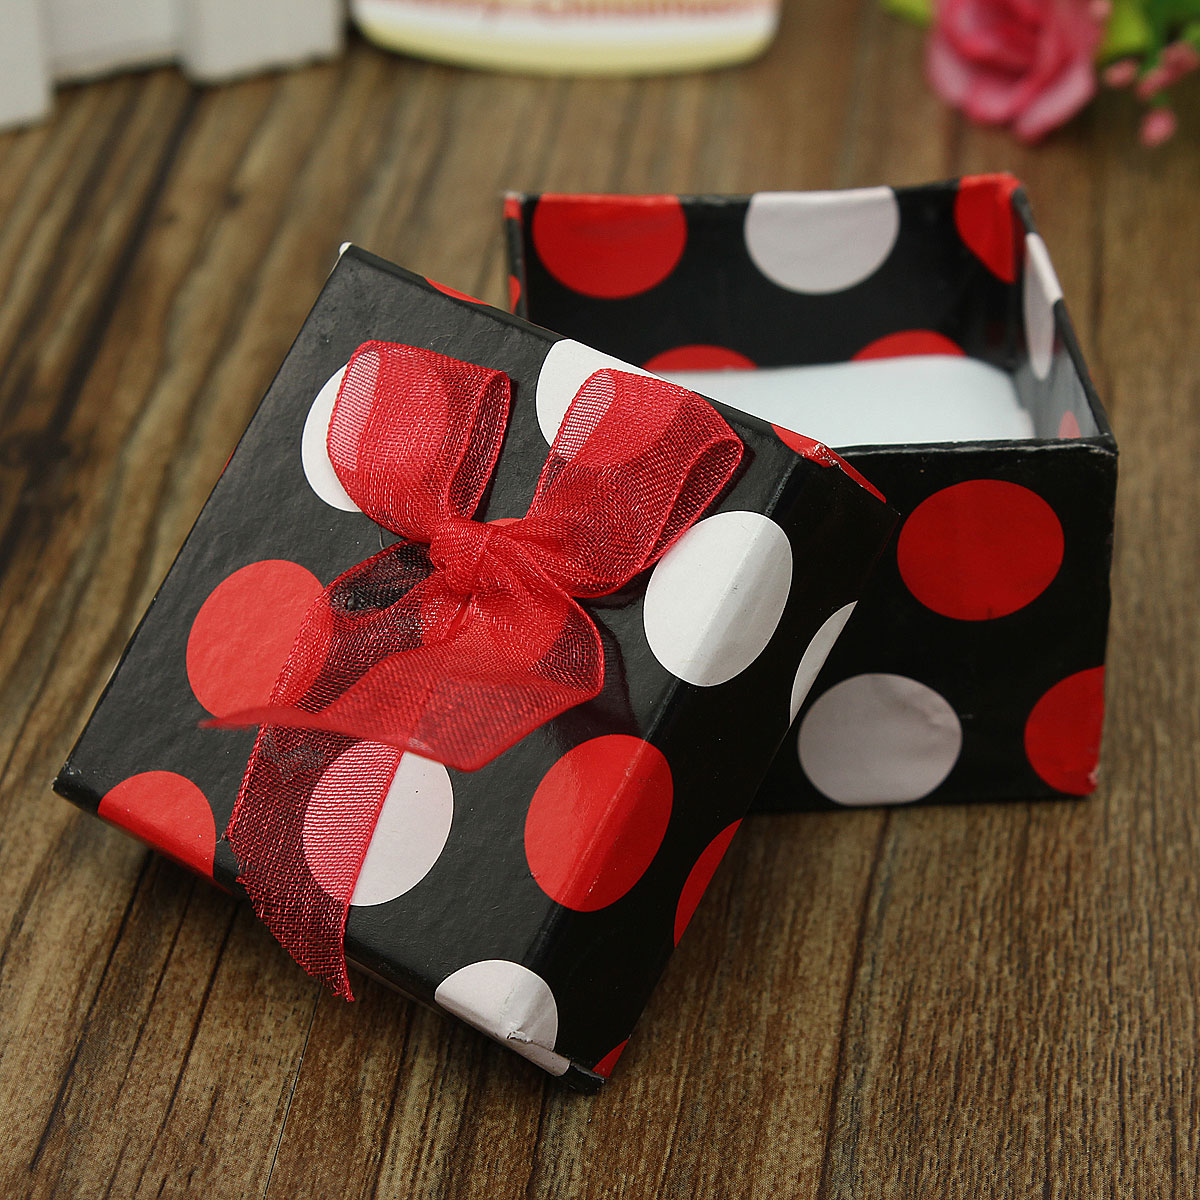 Dot Bowknot Jewelry Necklace Bracelet Ring Display Gift Box Case